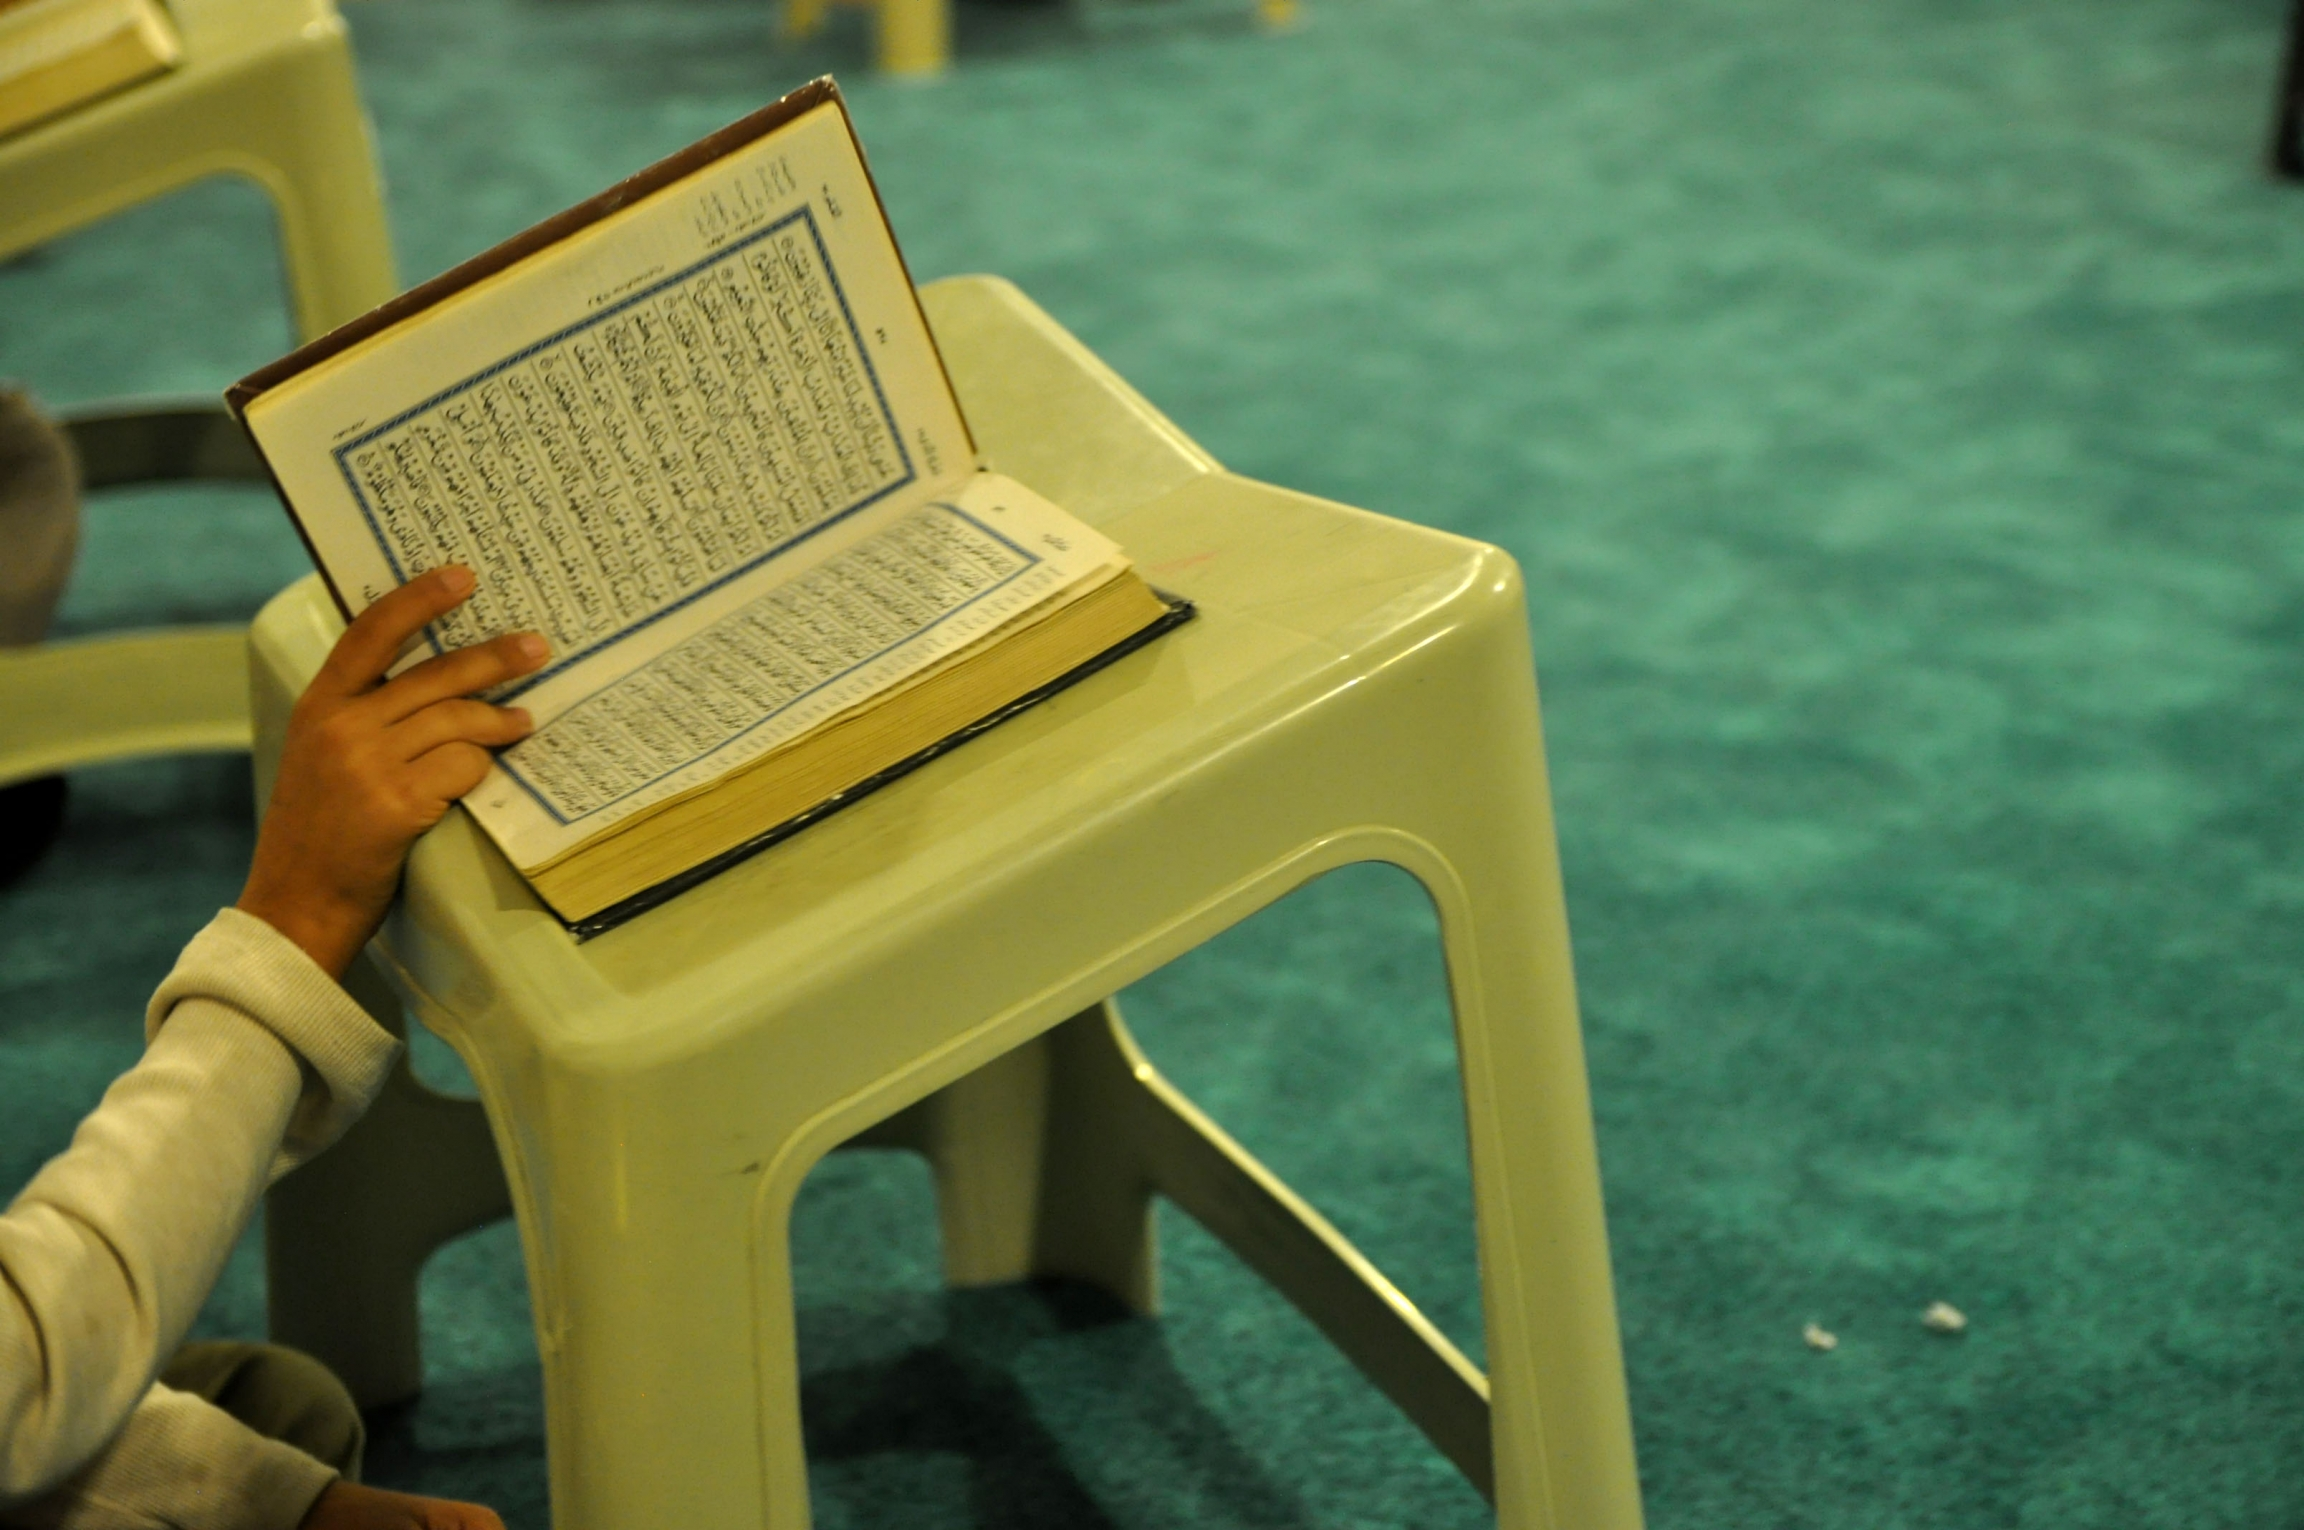 A hand holds the Quran open on a stool near green carpet